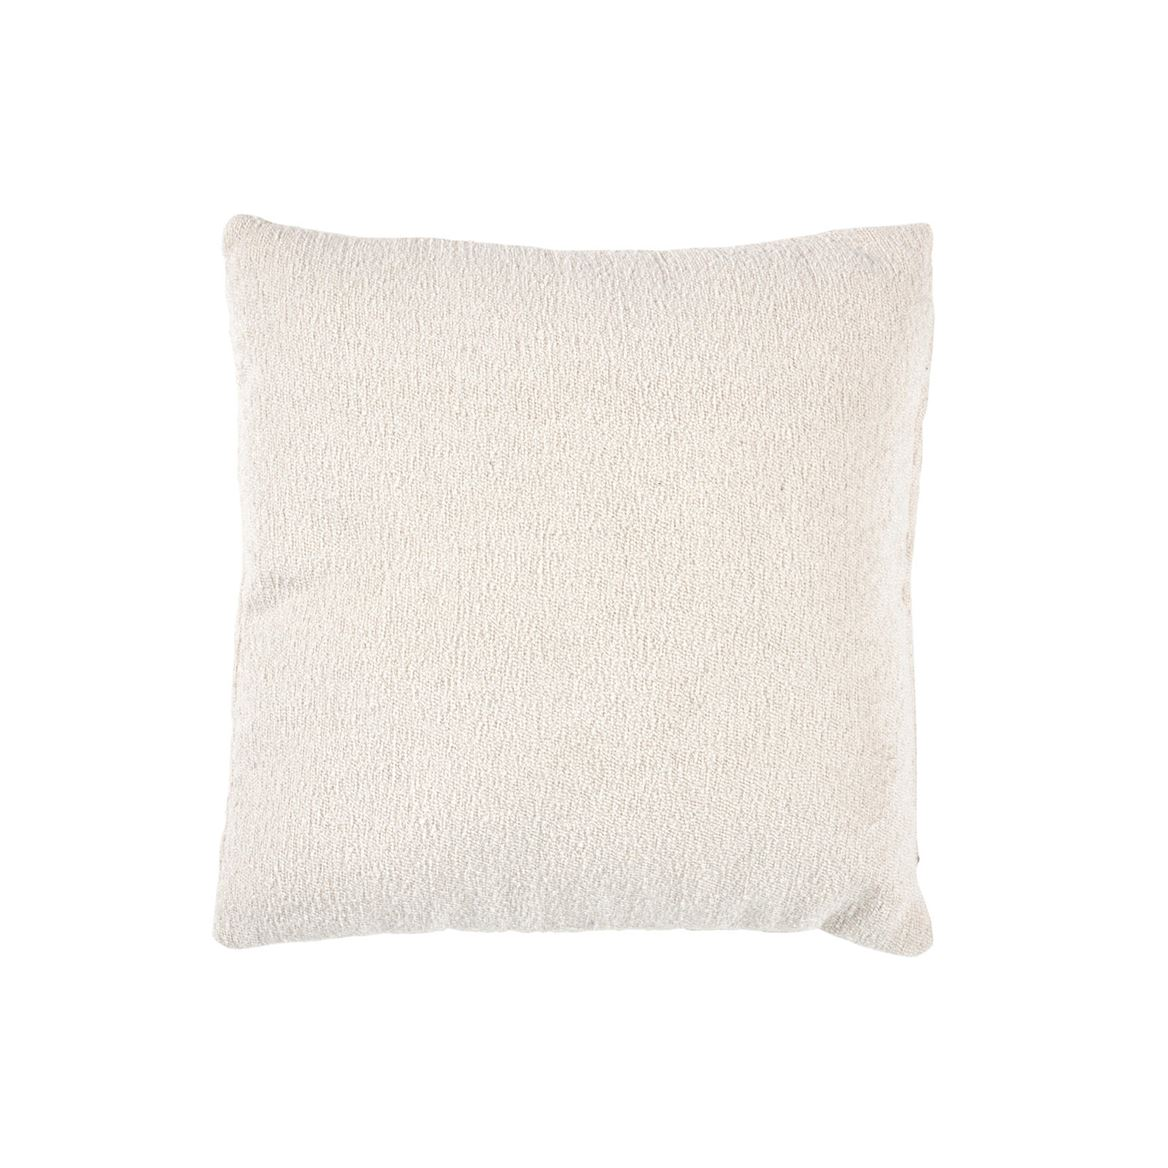 WILL Coussin blanc Larg. 45 x Long. 45 cm_will-coussin-blanc-larg--45-x-long--45-cm